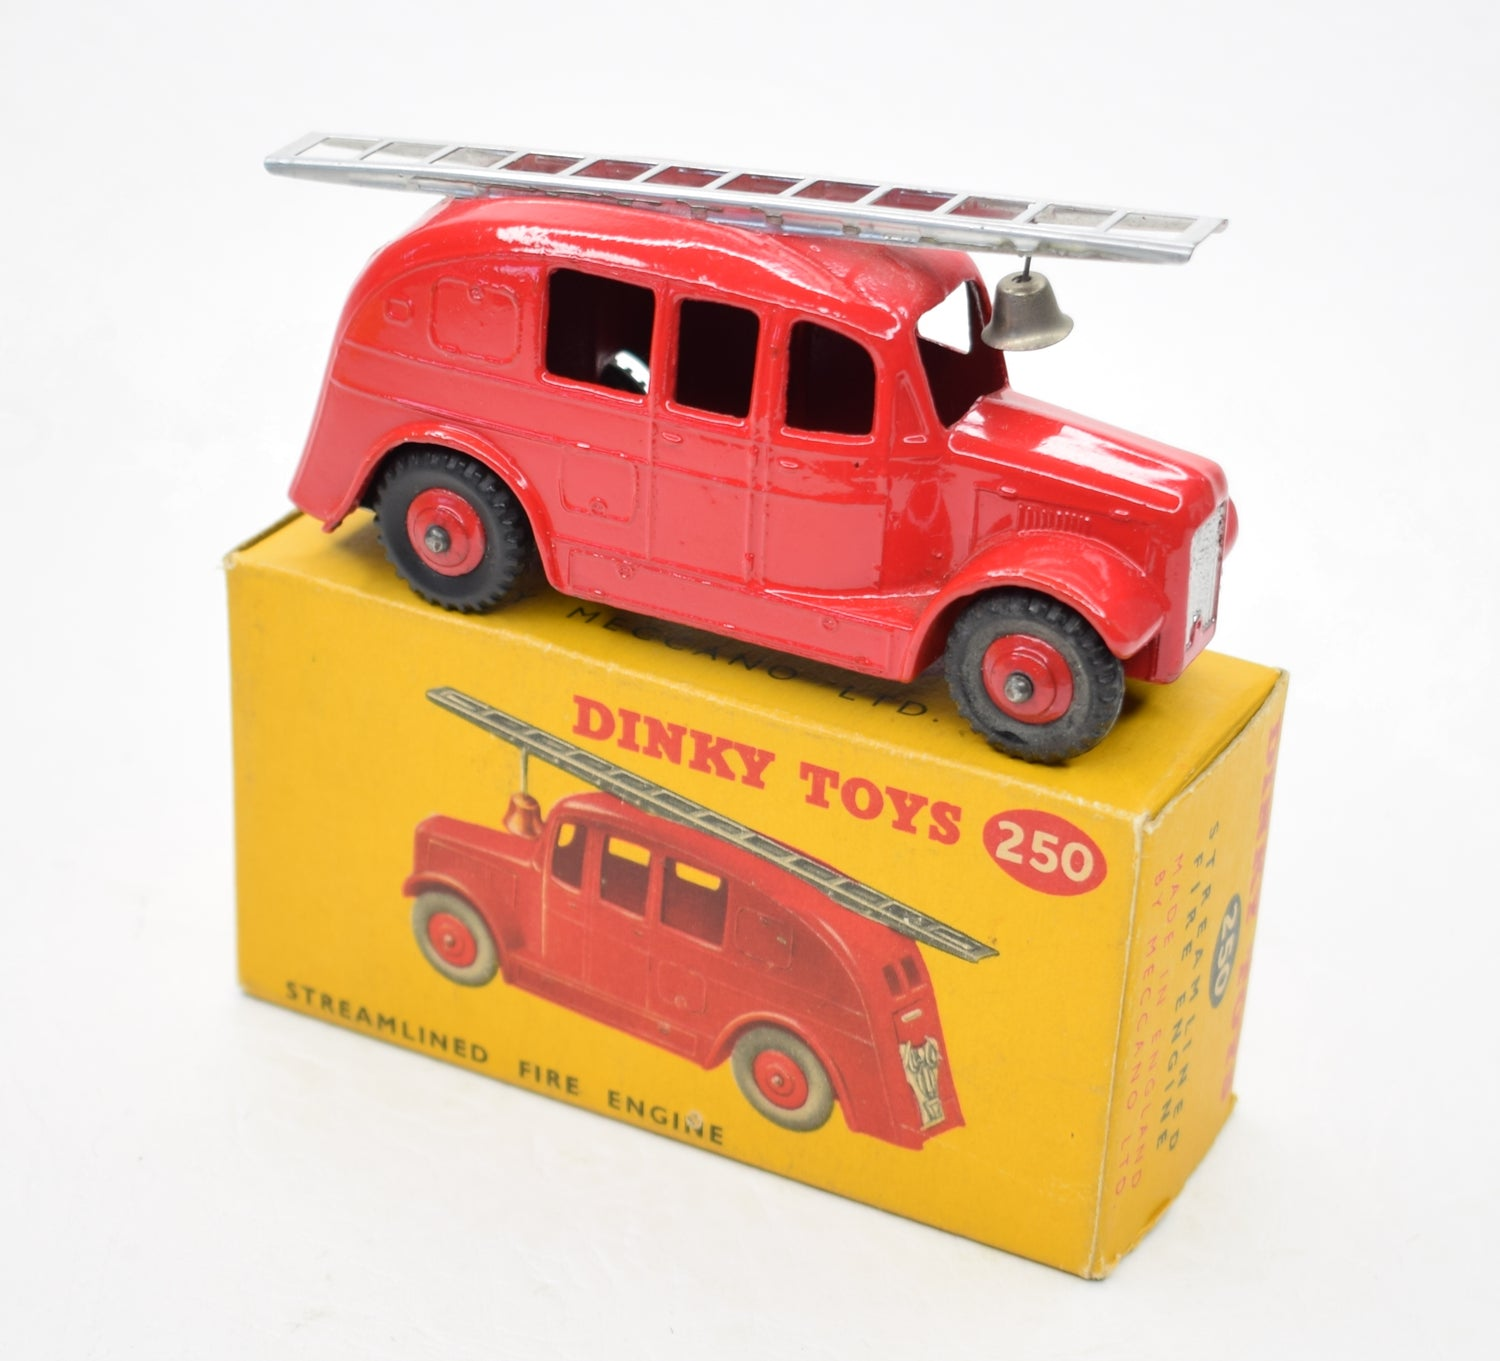 Dinky toys 250 Steamlined Fire Engine Virtually Mint/Boxed